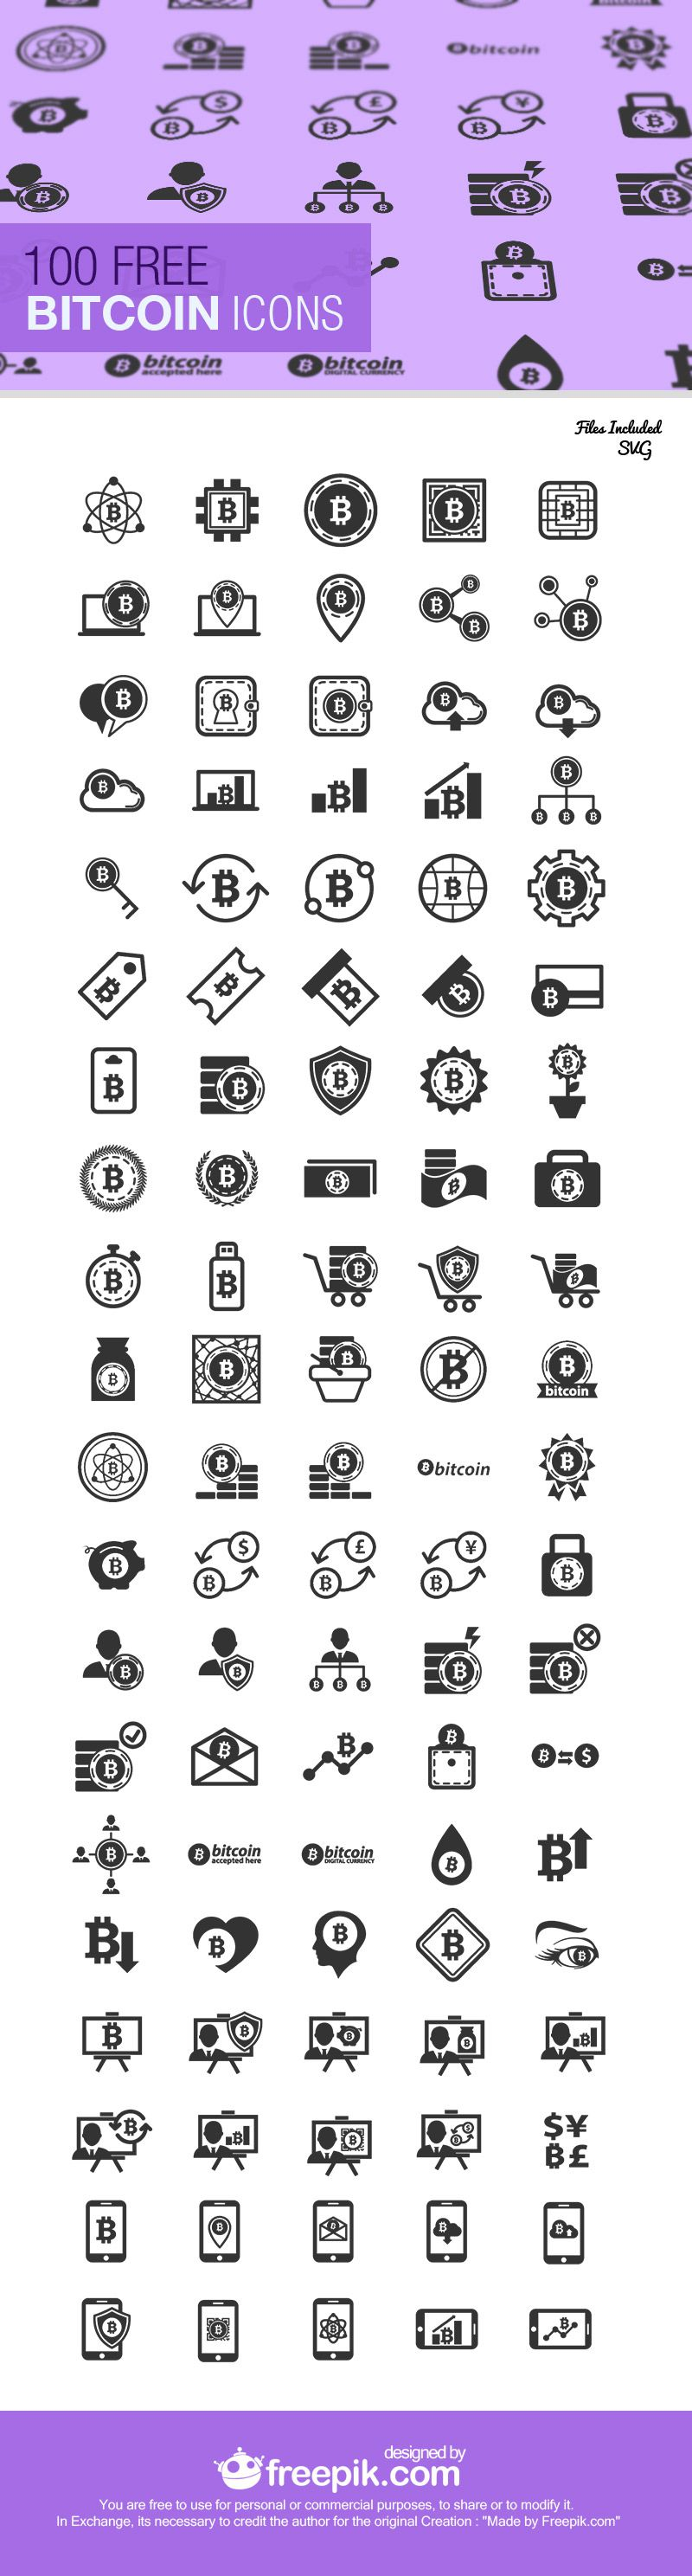 Free Bitcoin Icon Set svg jpg formats Preview